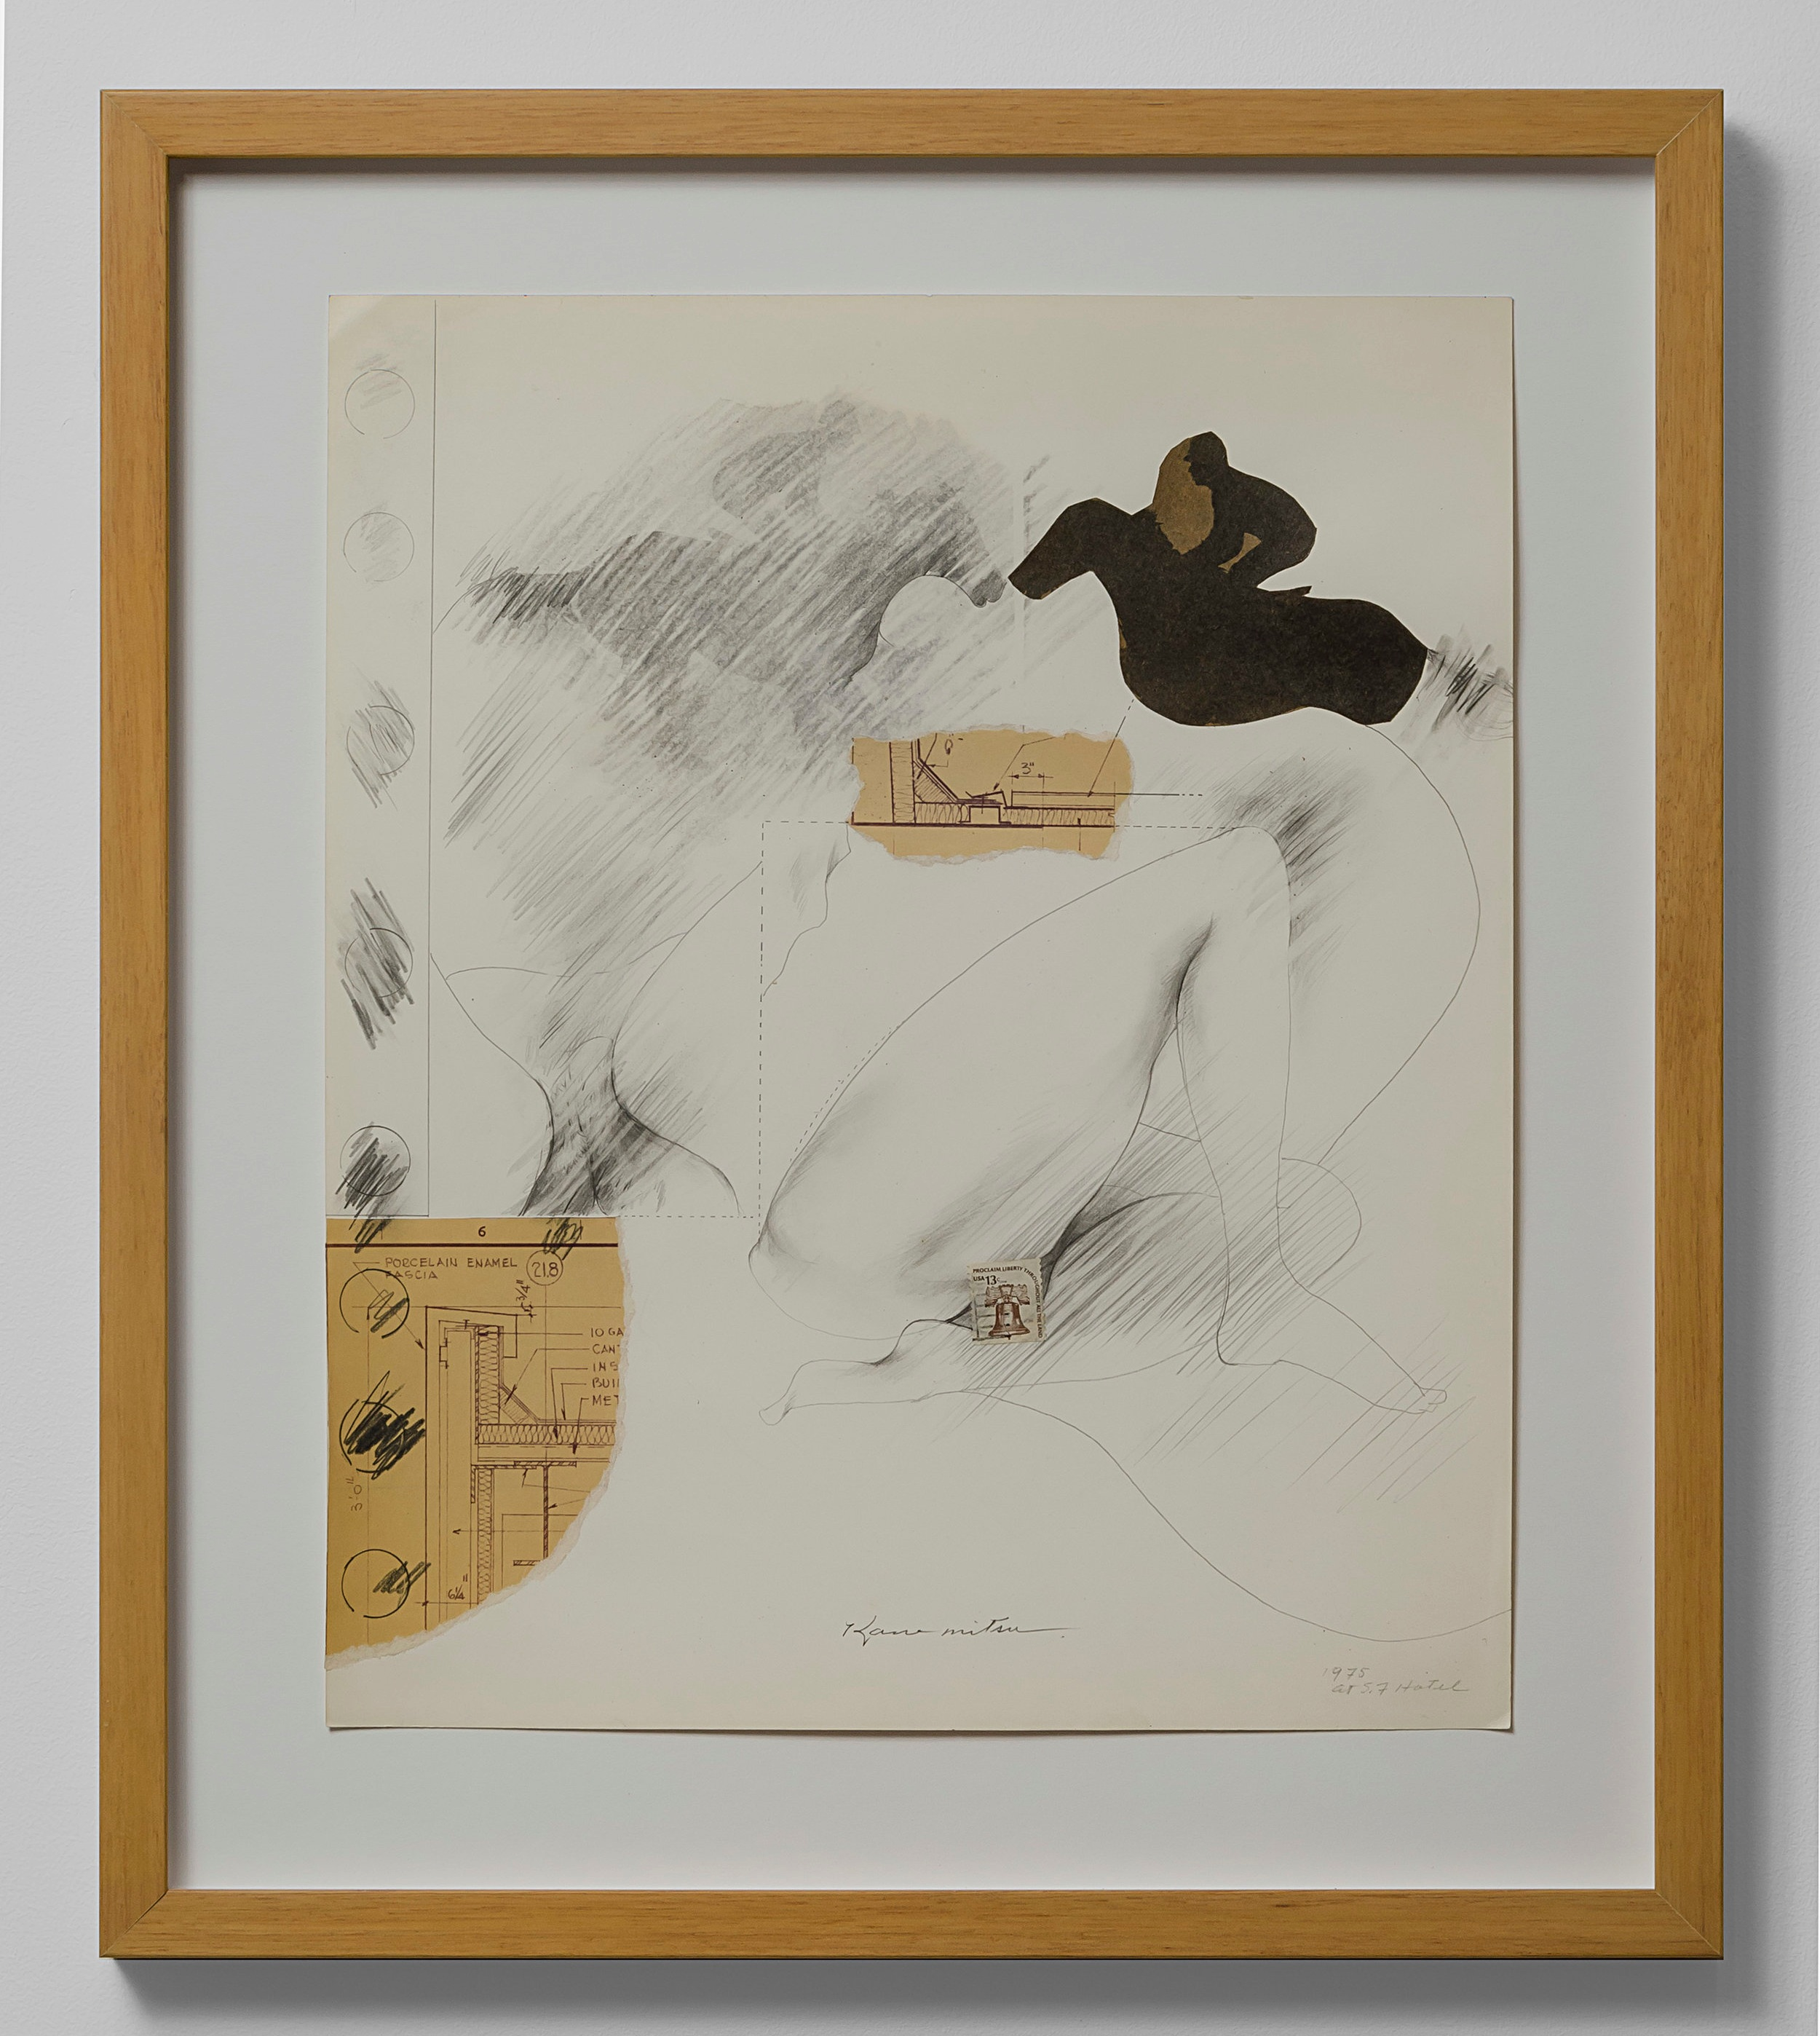 Untitled   1975  paper collage and graphite on paper  17 x 14 inches, 43.2 x 35.6 centimeters